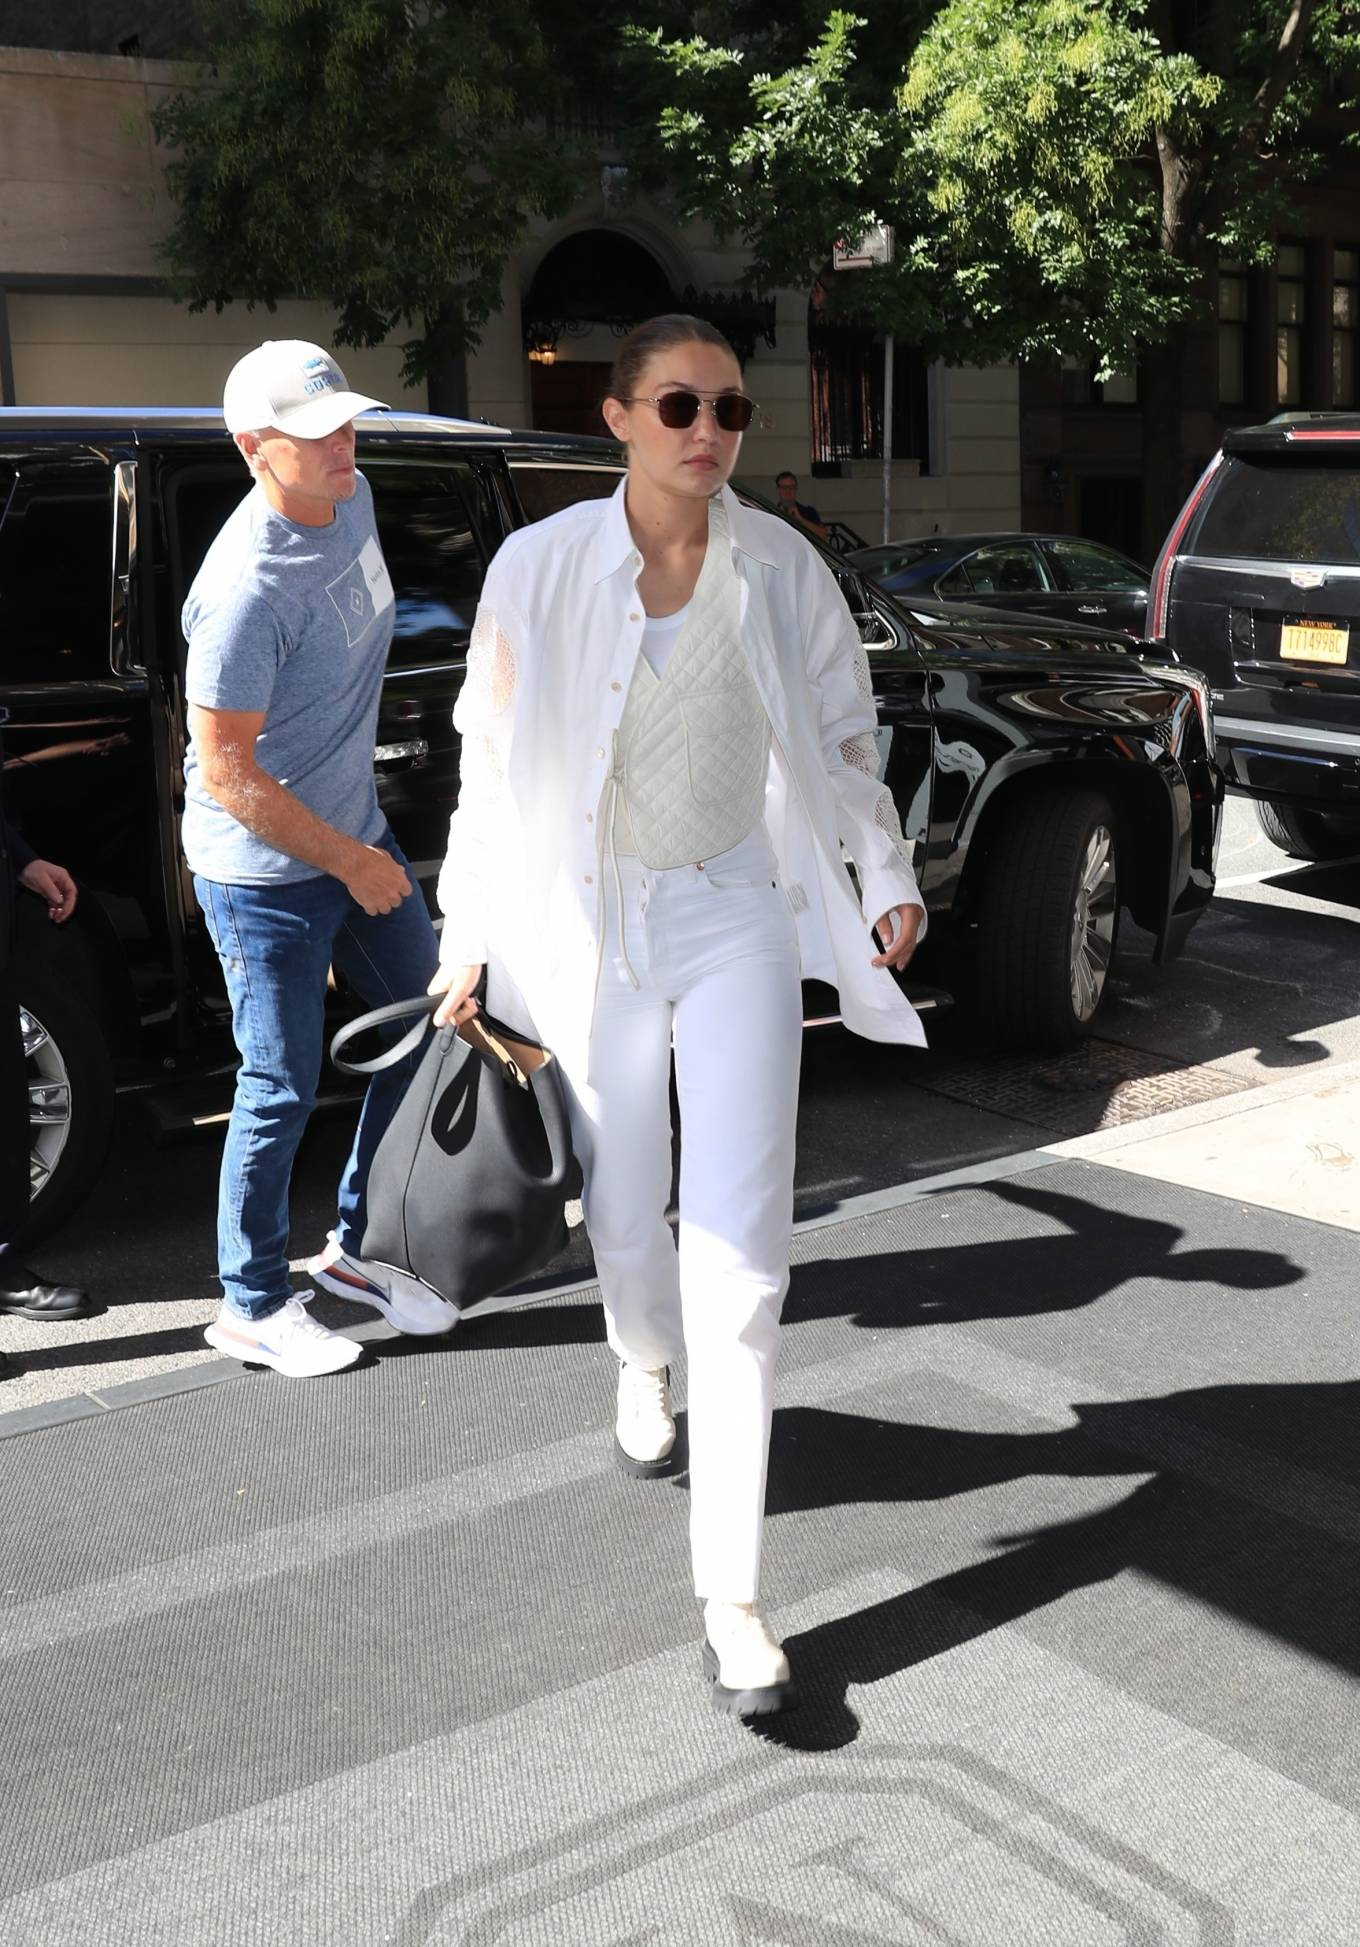 Gigi Hadid wearing a oversized white cotton shirt with full sleeves, shirt collar and embroidered cutout detailing on the sleeve